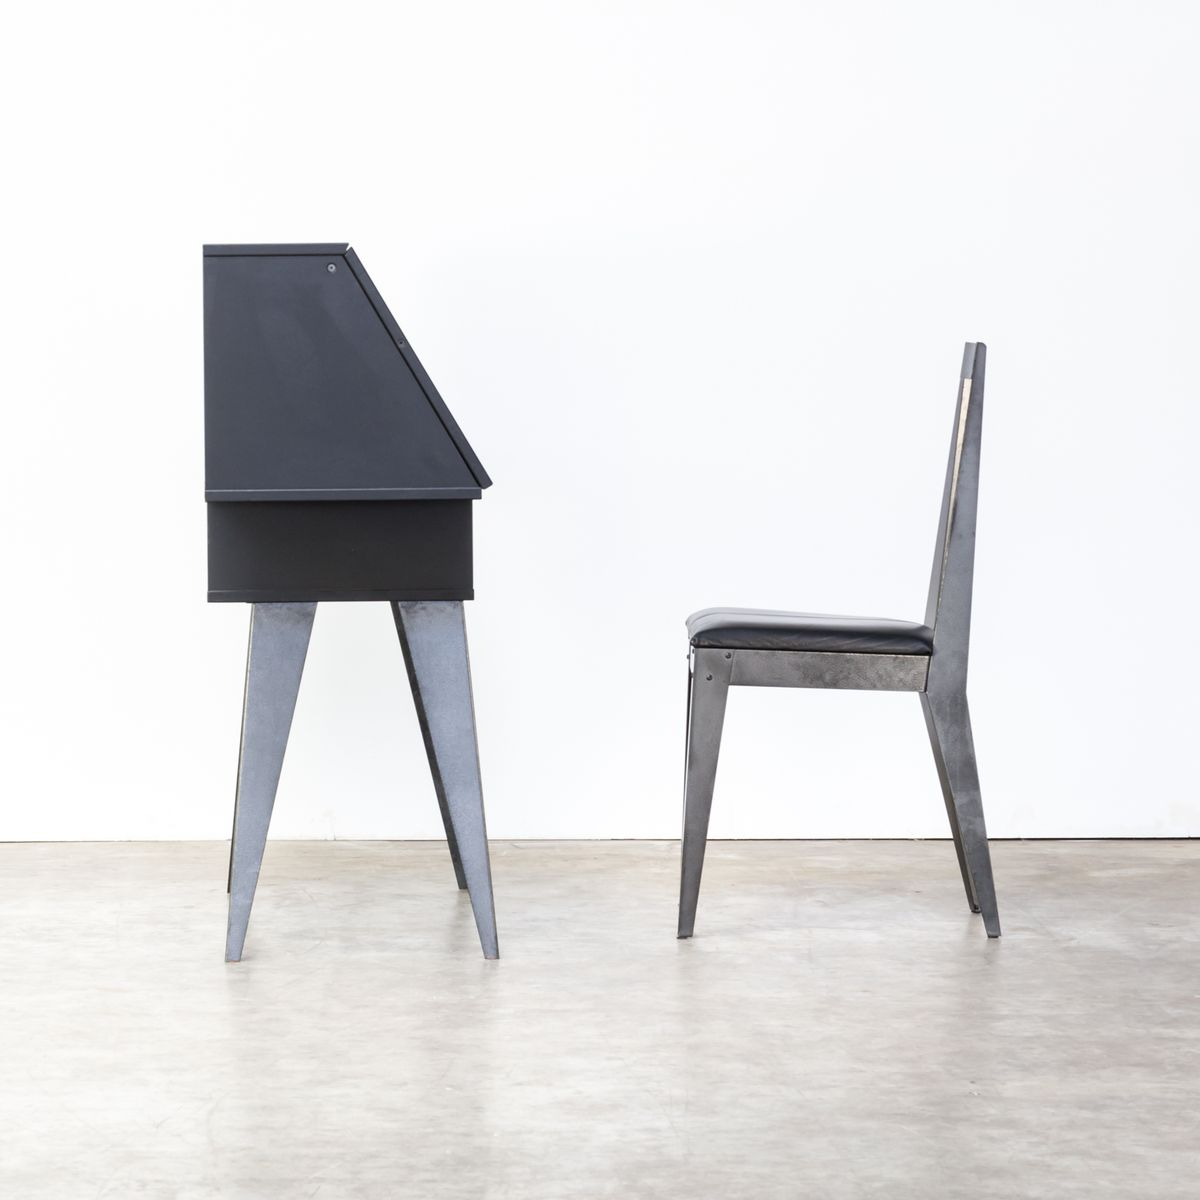 Ikea Secretaire Secretaire And Chair By Tjord Björklund For Ikea 1990s